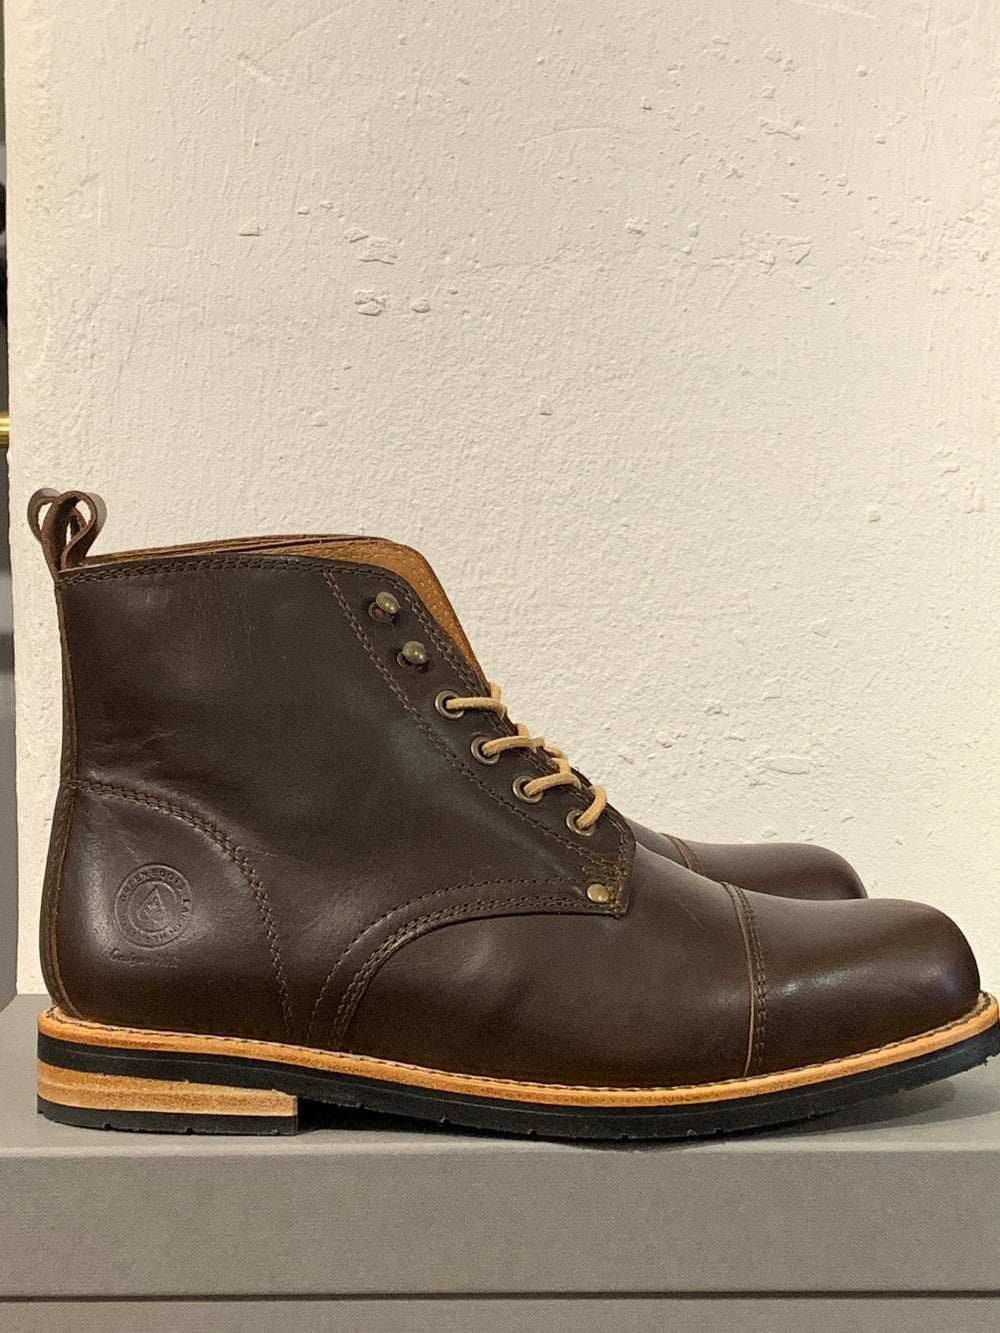 Image of Service Boots 002.03 True Heritage Boots